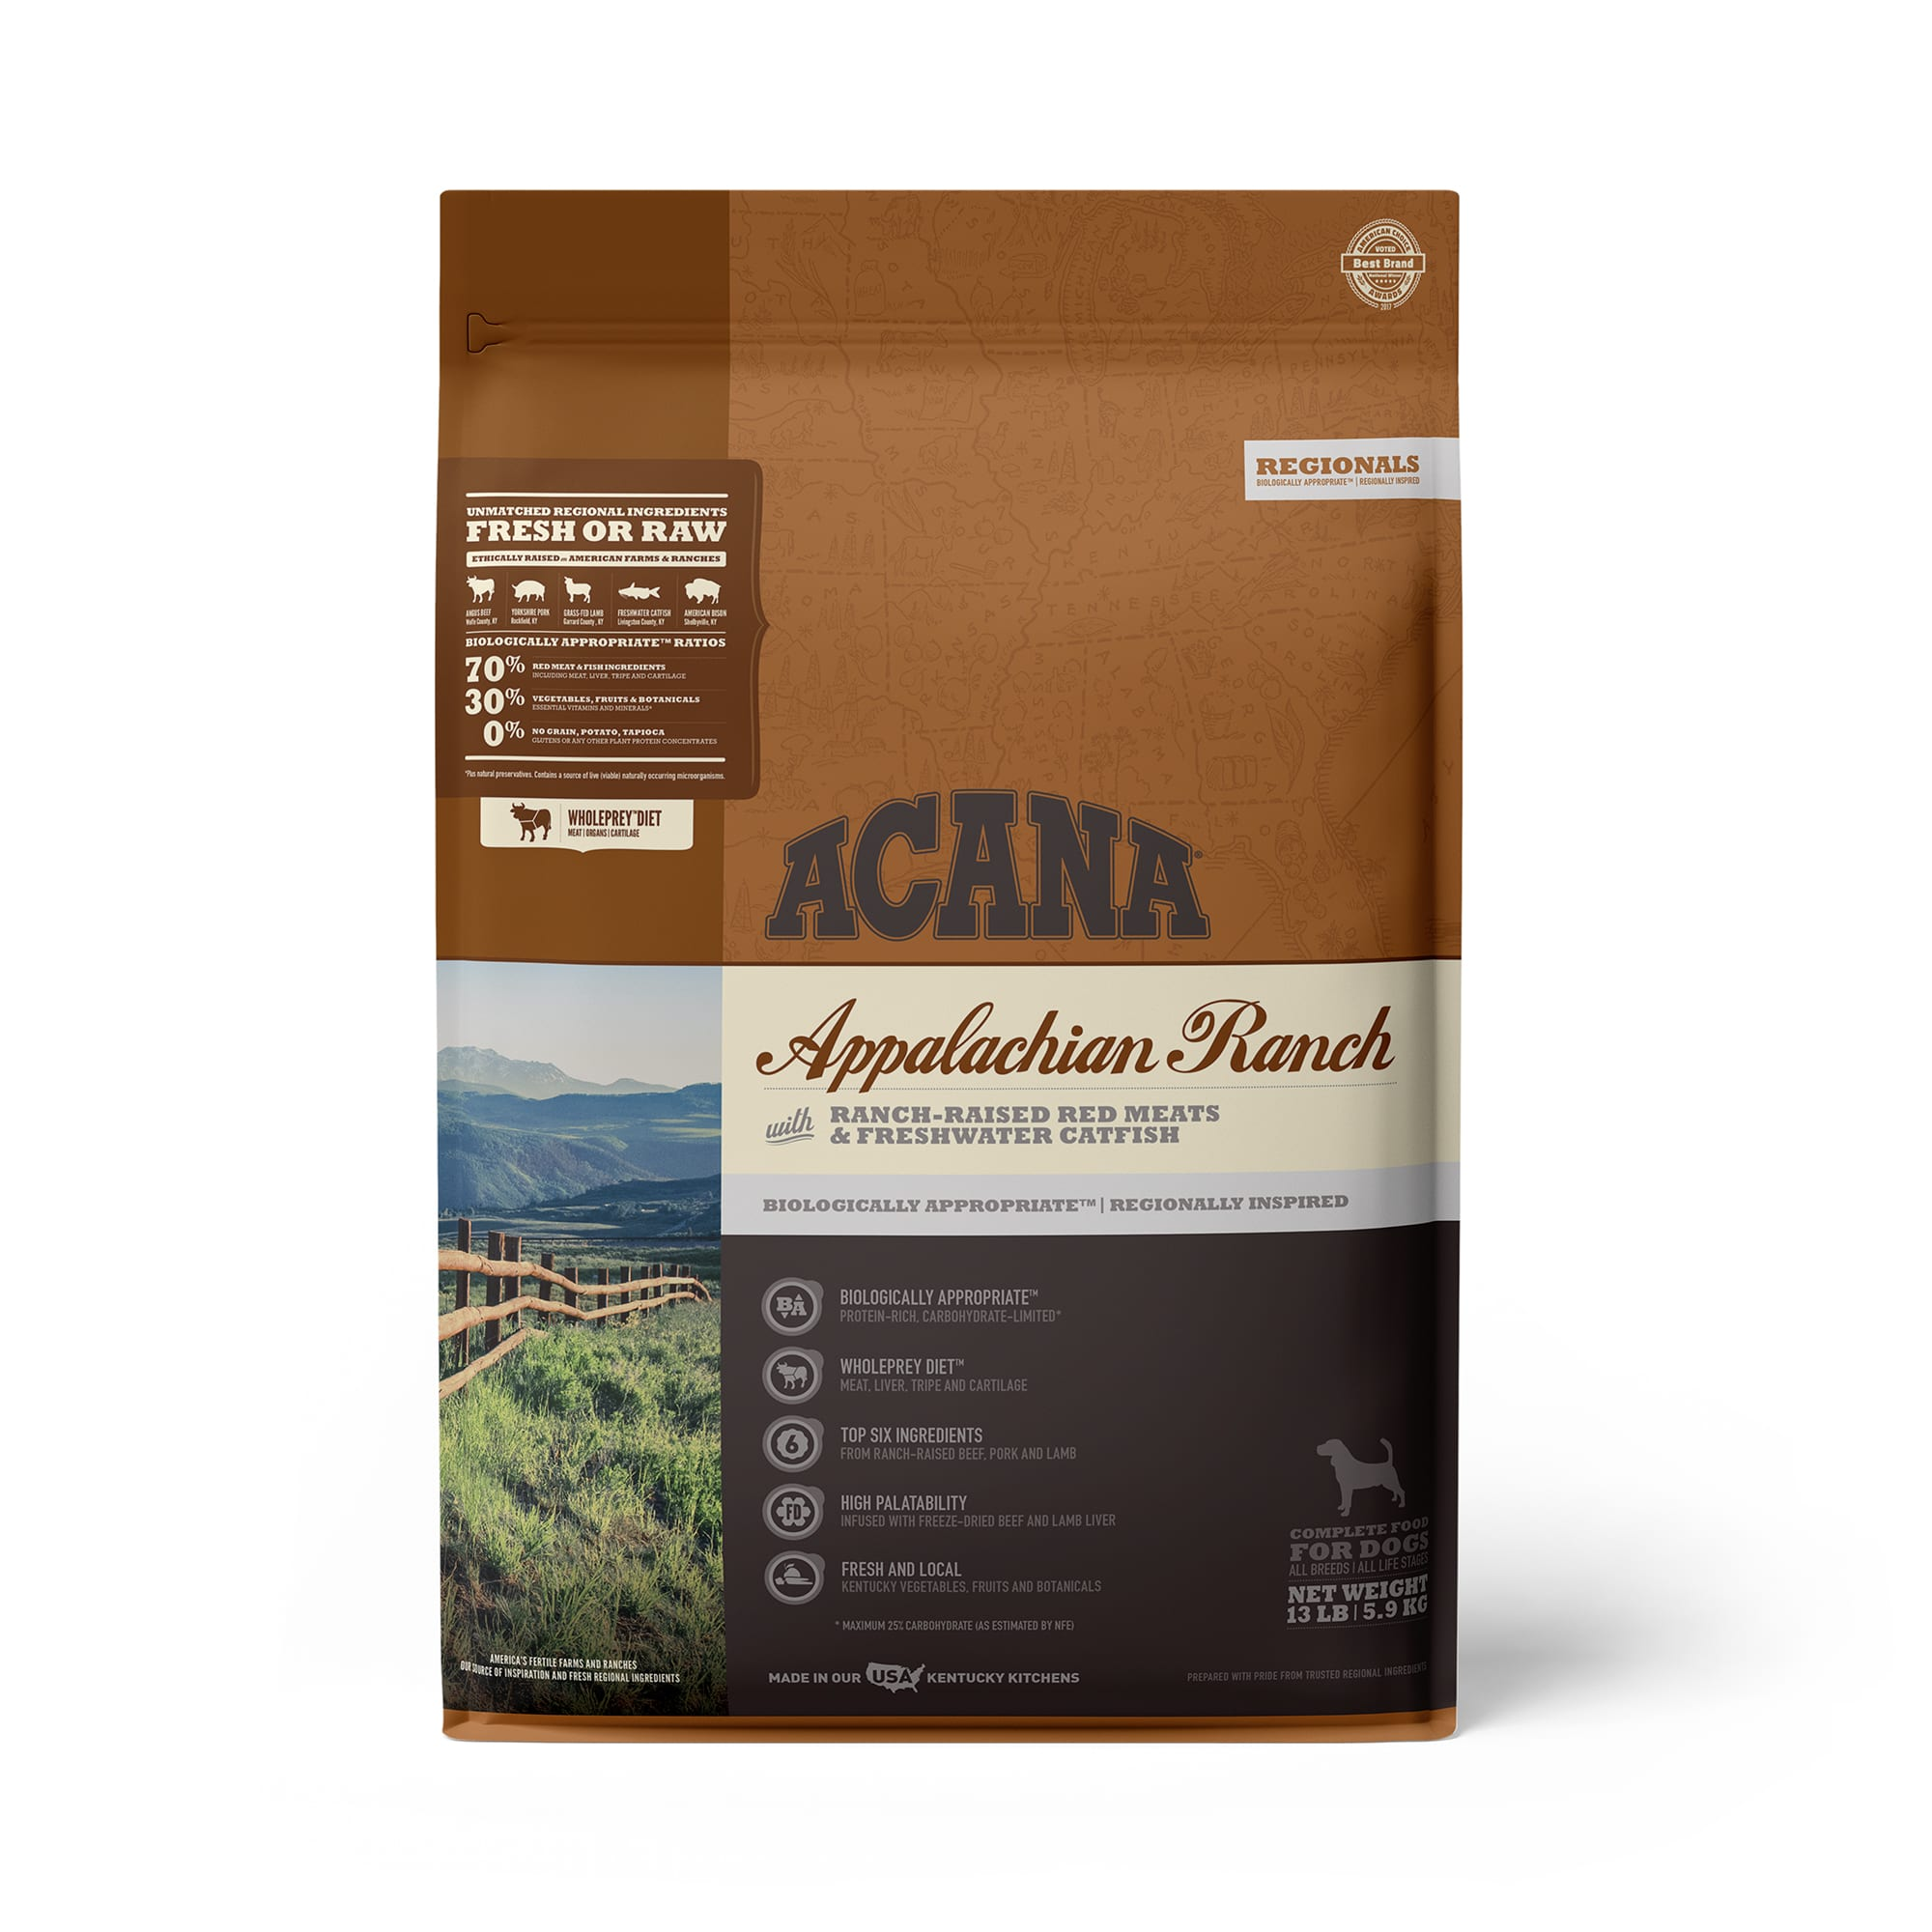 ACANA Appalachian Ranch Grain Free High Protein Freeze-Dried Coated Beef Pork Lamb Bison and Fish Dry Dog Food, 13 lbs.